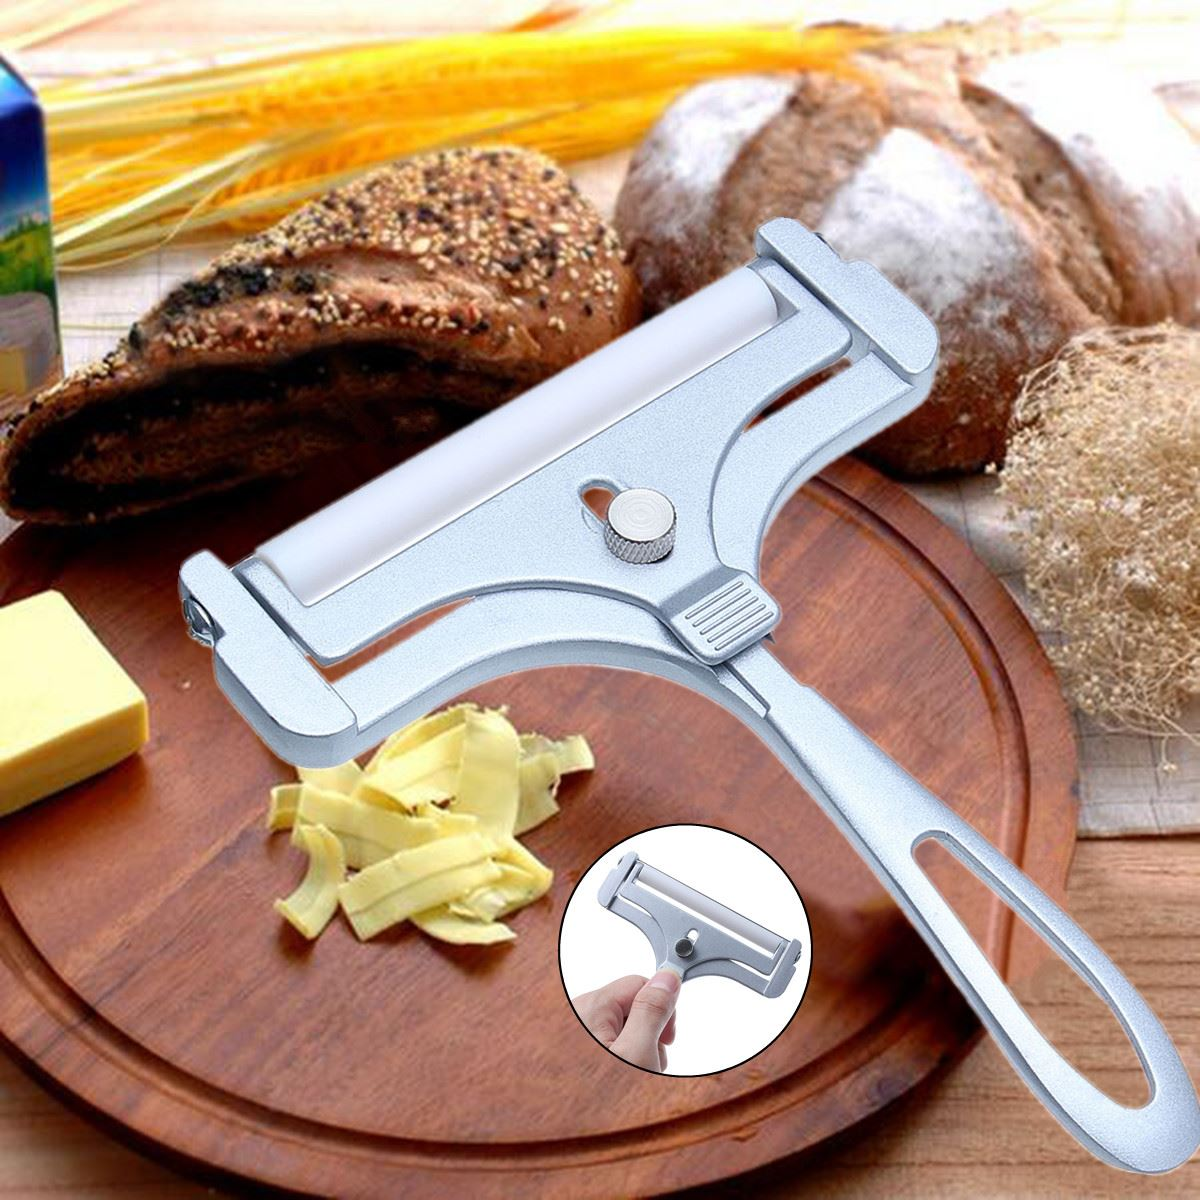 <font><b>Adjustable</b></font> <font><b>Cheese</b></font> <font><b>Slicer</b></font> Cutter Zinc Alloy <font><b>Cheese</b></font> <font><b>Slicers</b></font> Knife Butter Grater Home Kitchen Baking Cooking Tools Kitchenware image